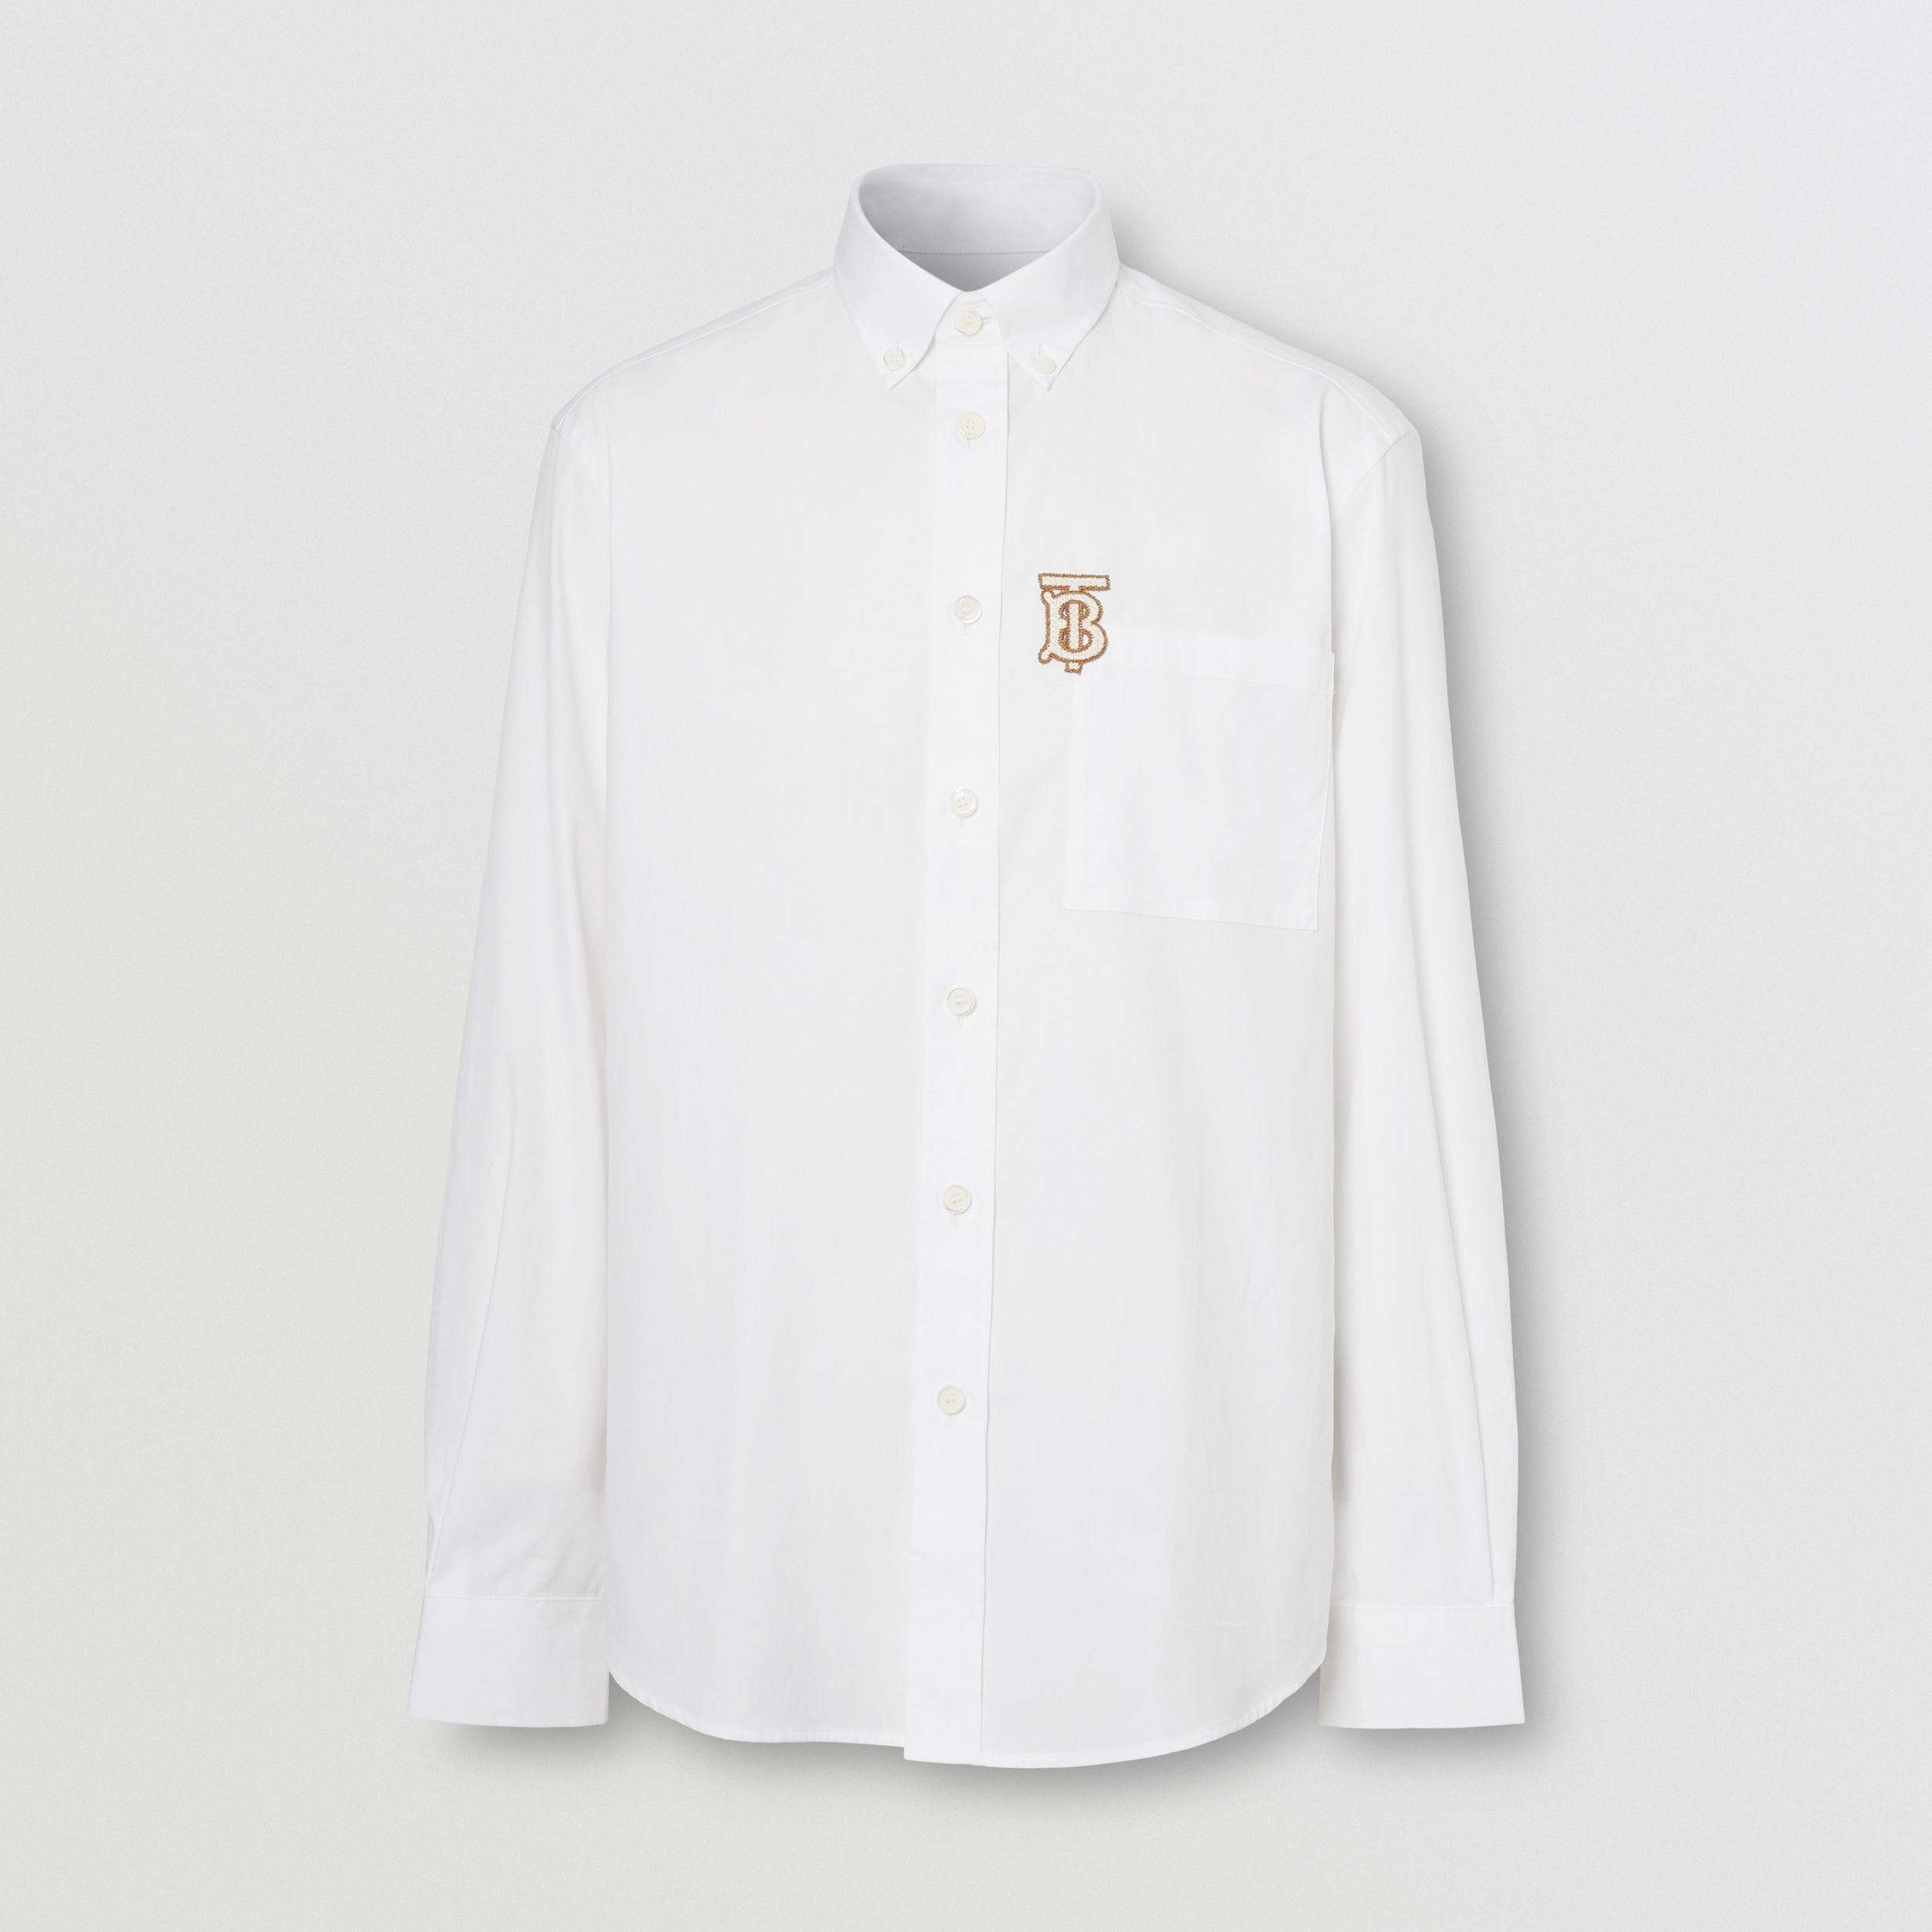 Monogram Motif Stretch Cotton Poplin Shirt in White - Men | Burberry Australia - 4